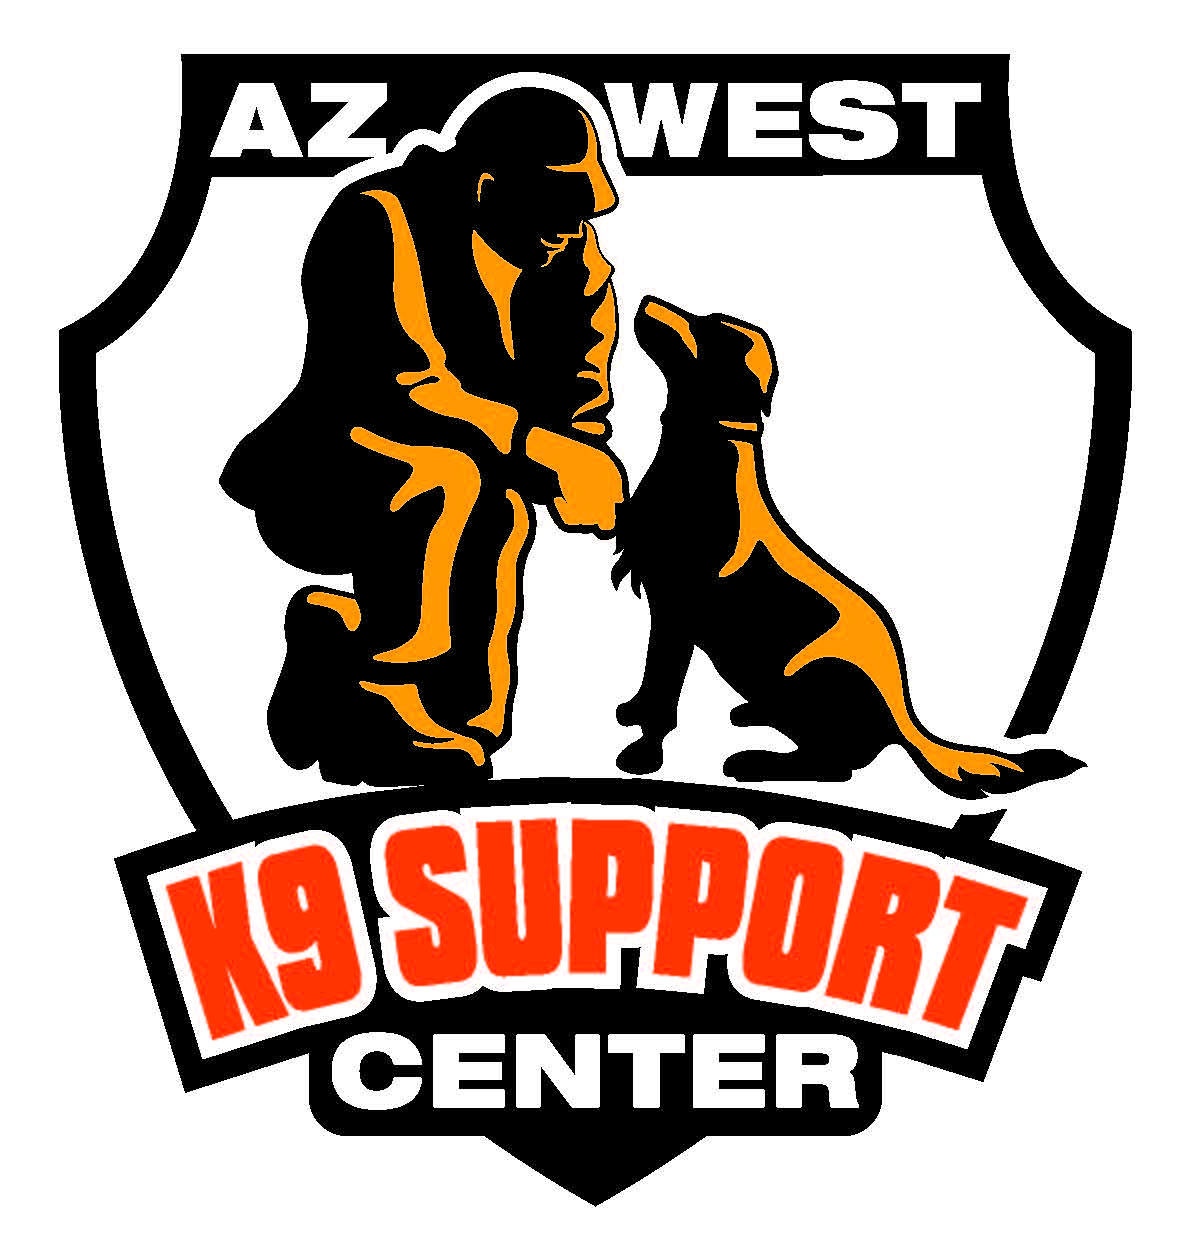 AZ West K9 Support Ctr_logo_cmyk